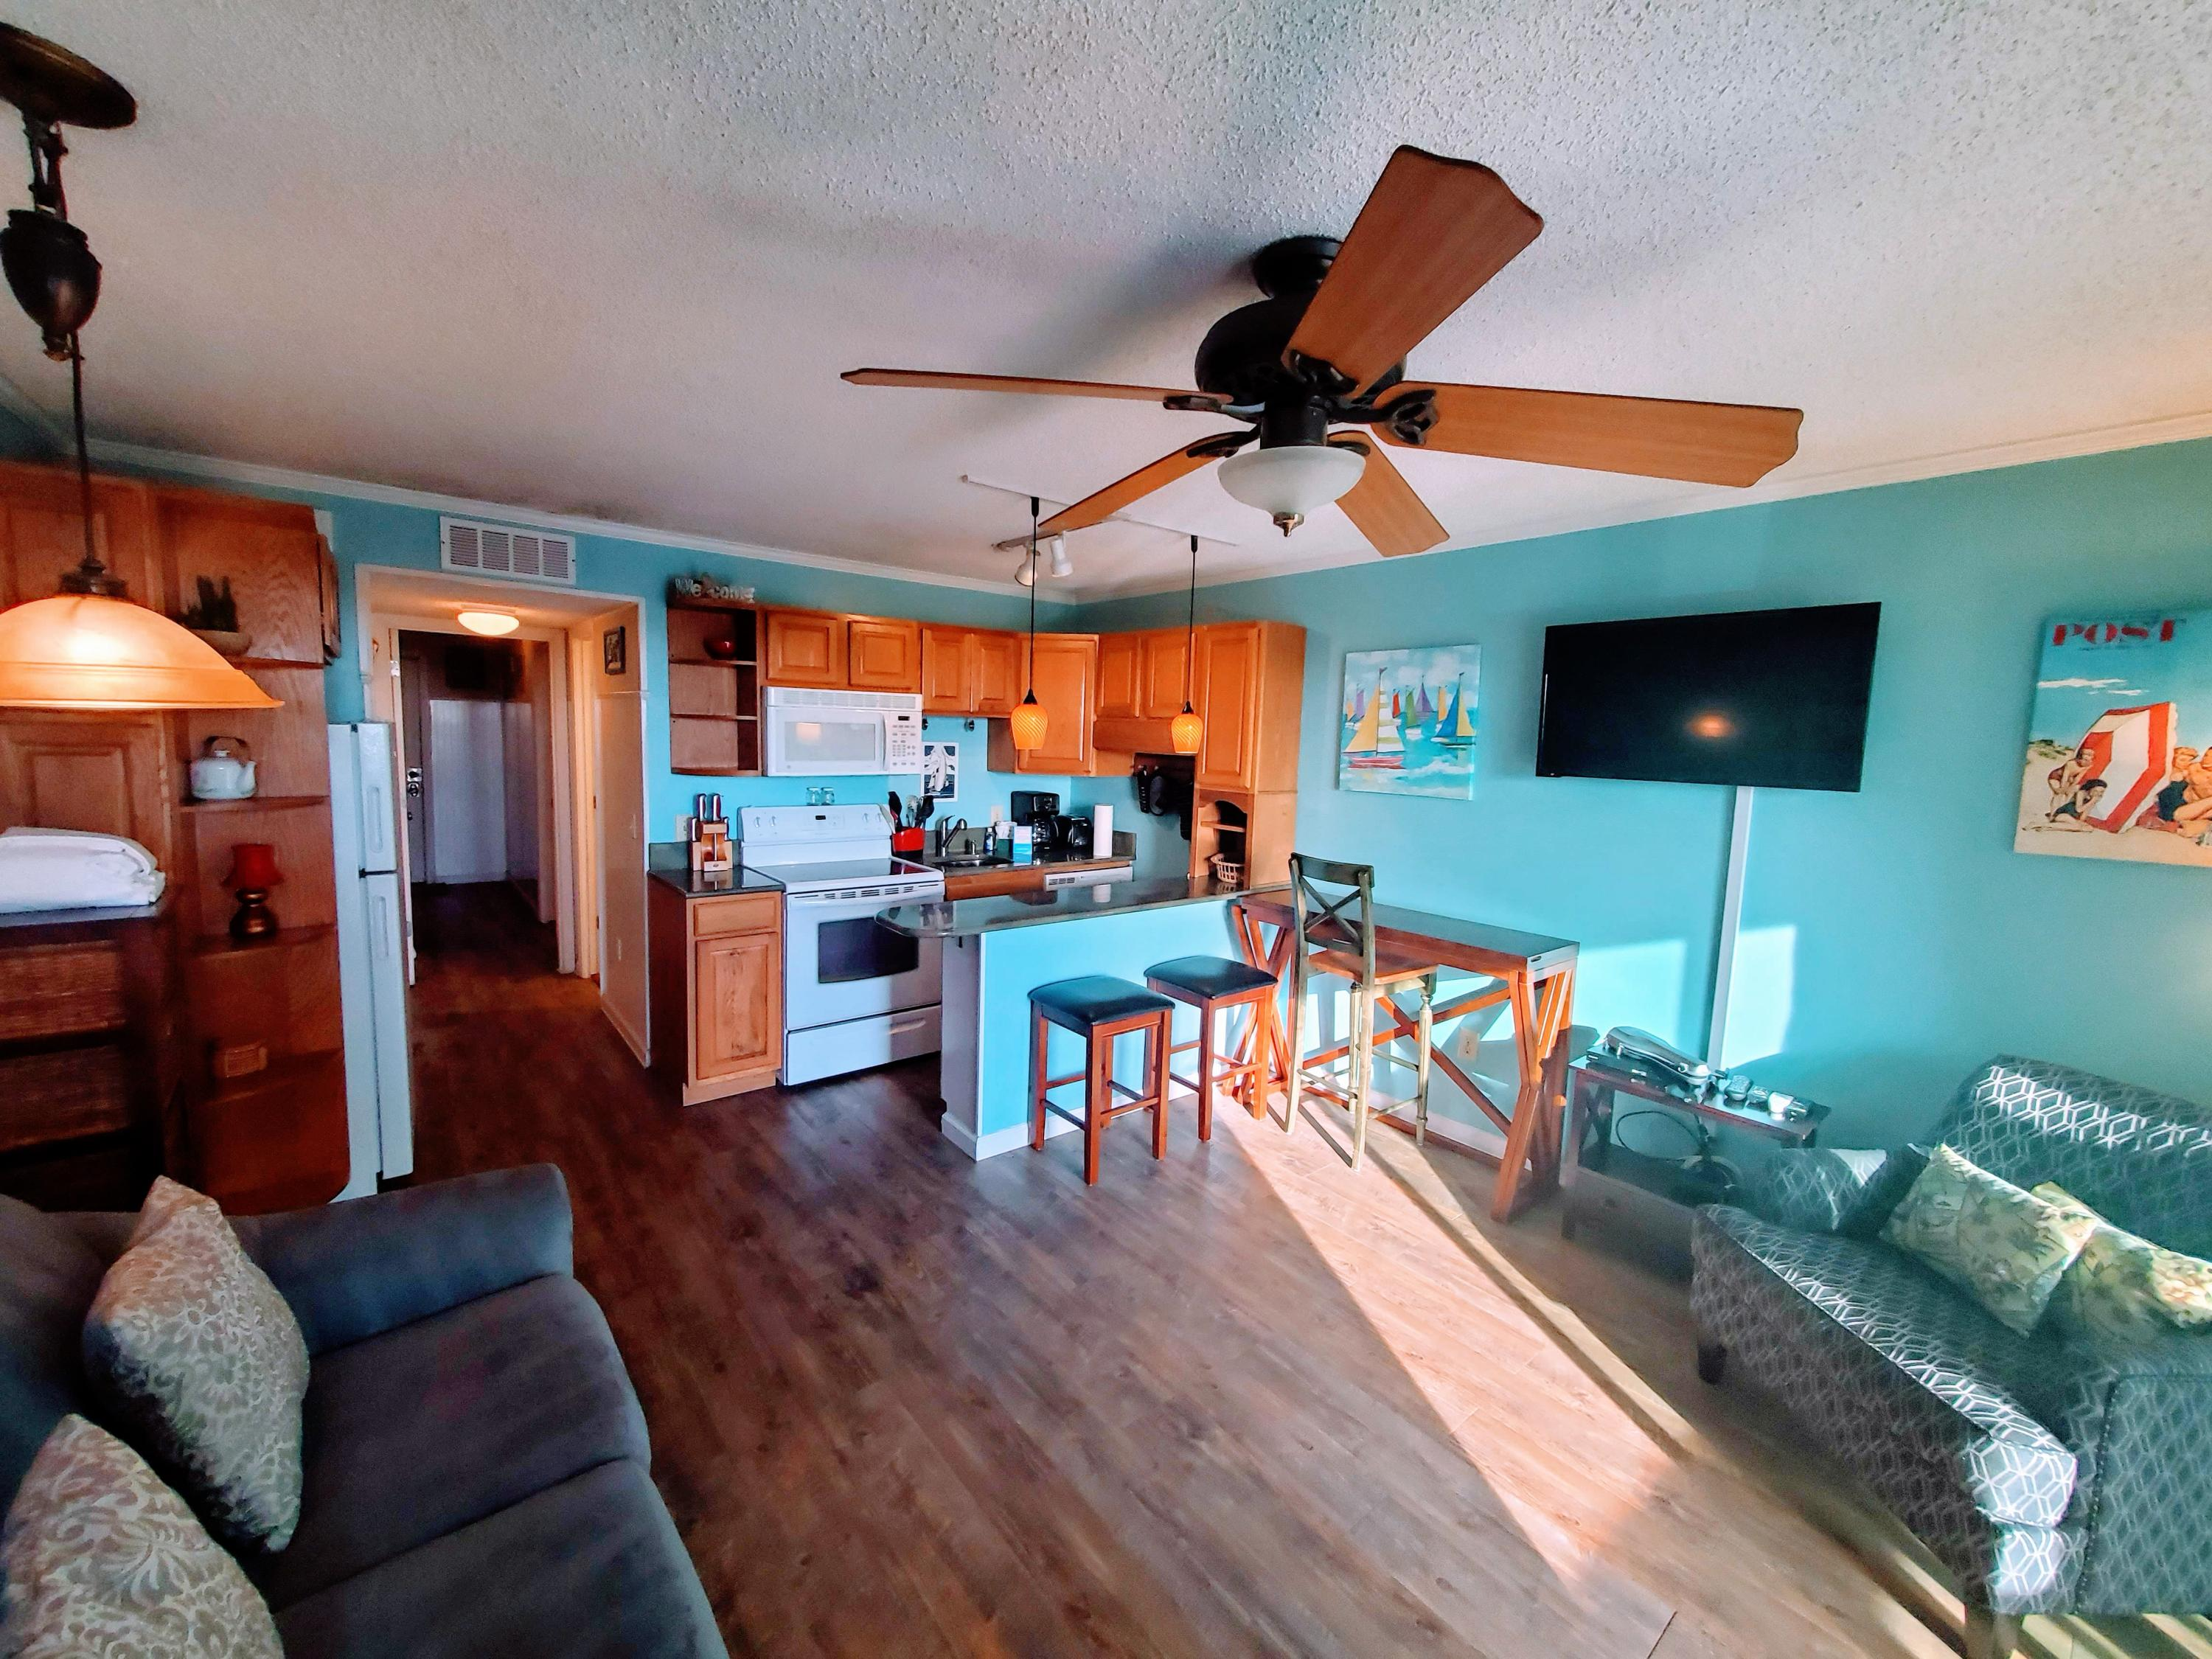 Sea Cabin On The Ocean Homes For Sale - 1300 Ocean, Isle of Palms, SC - 3